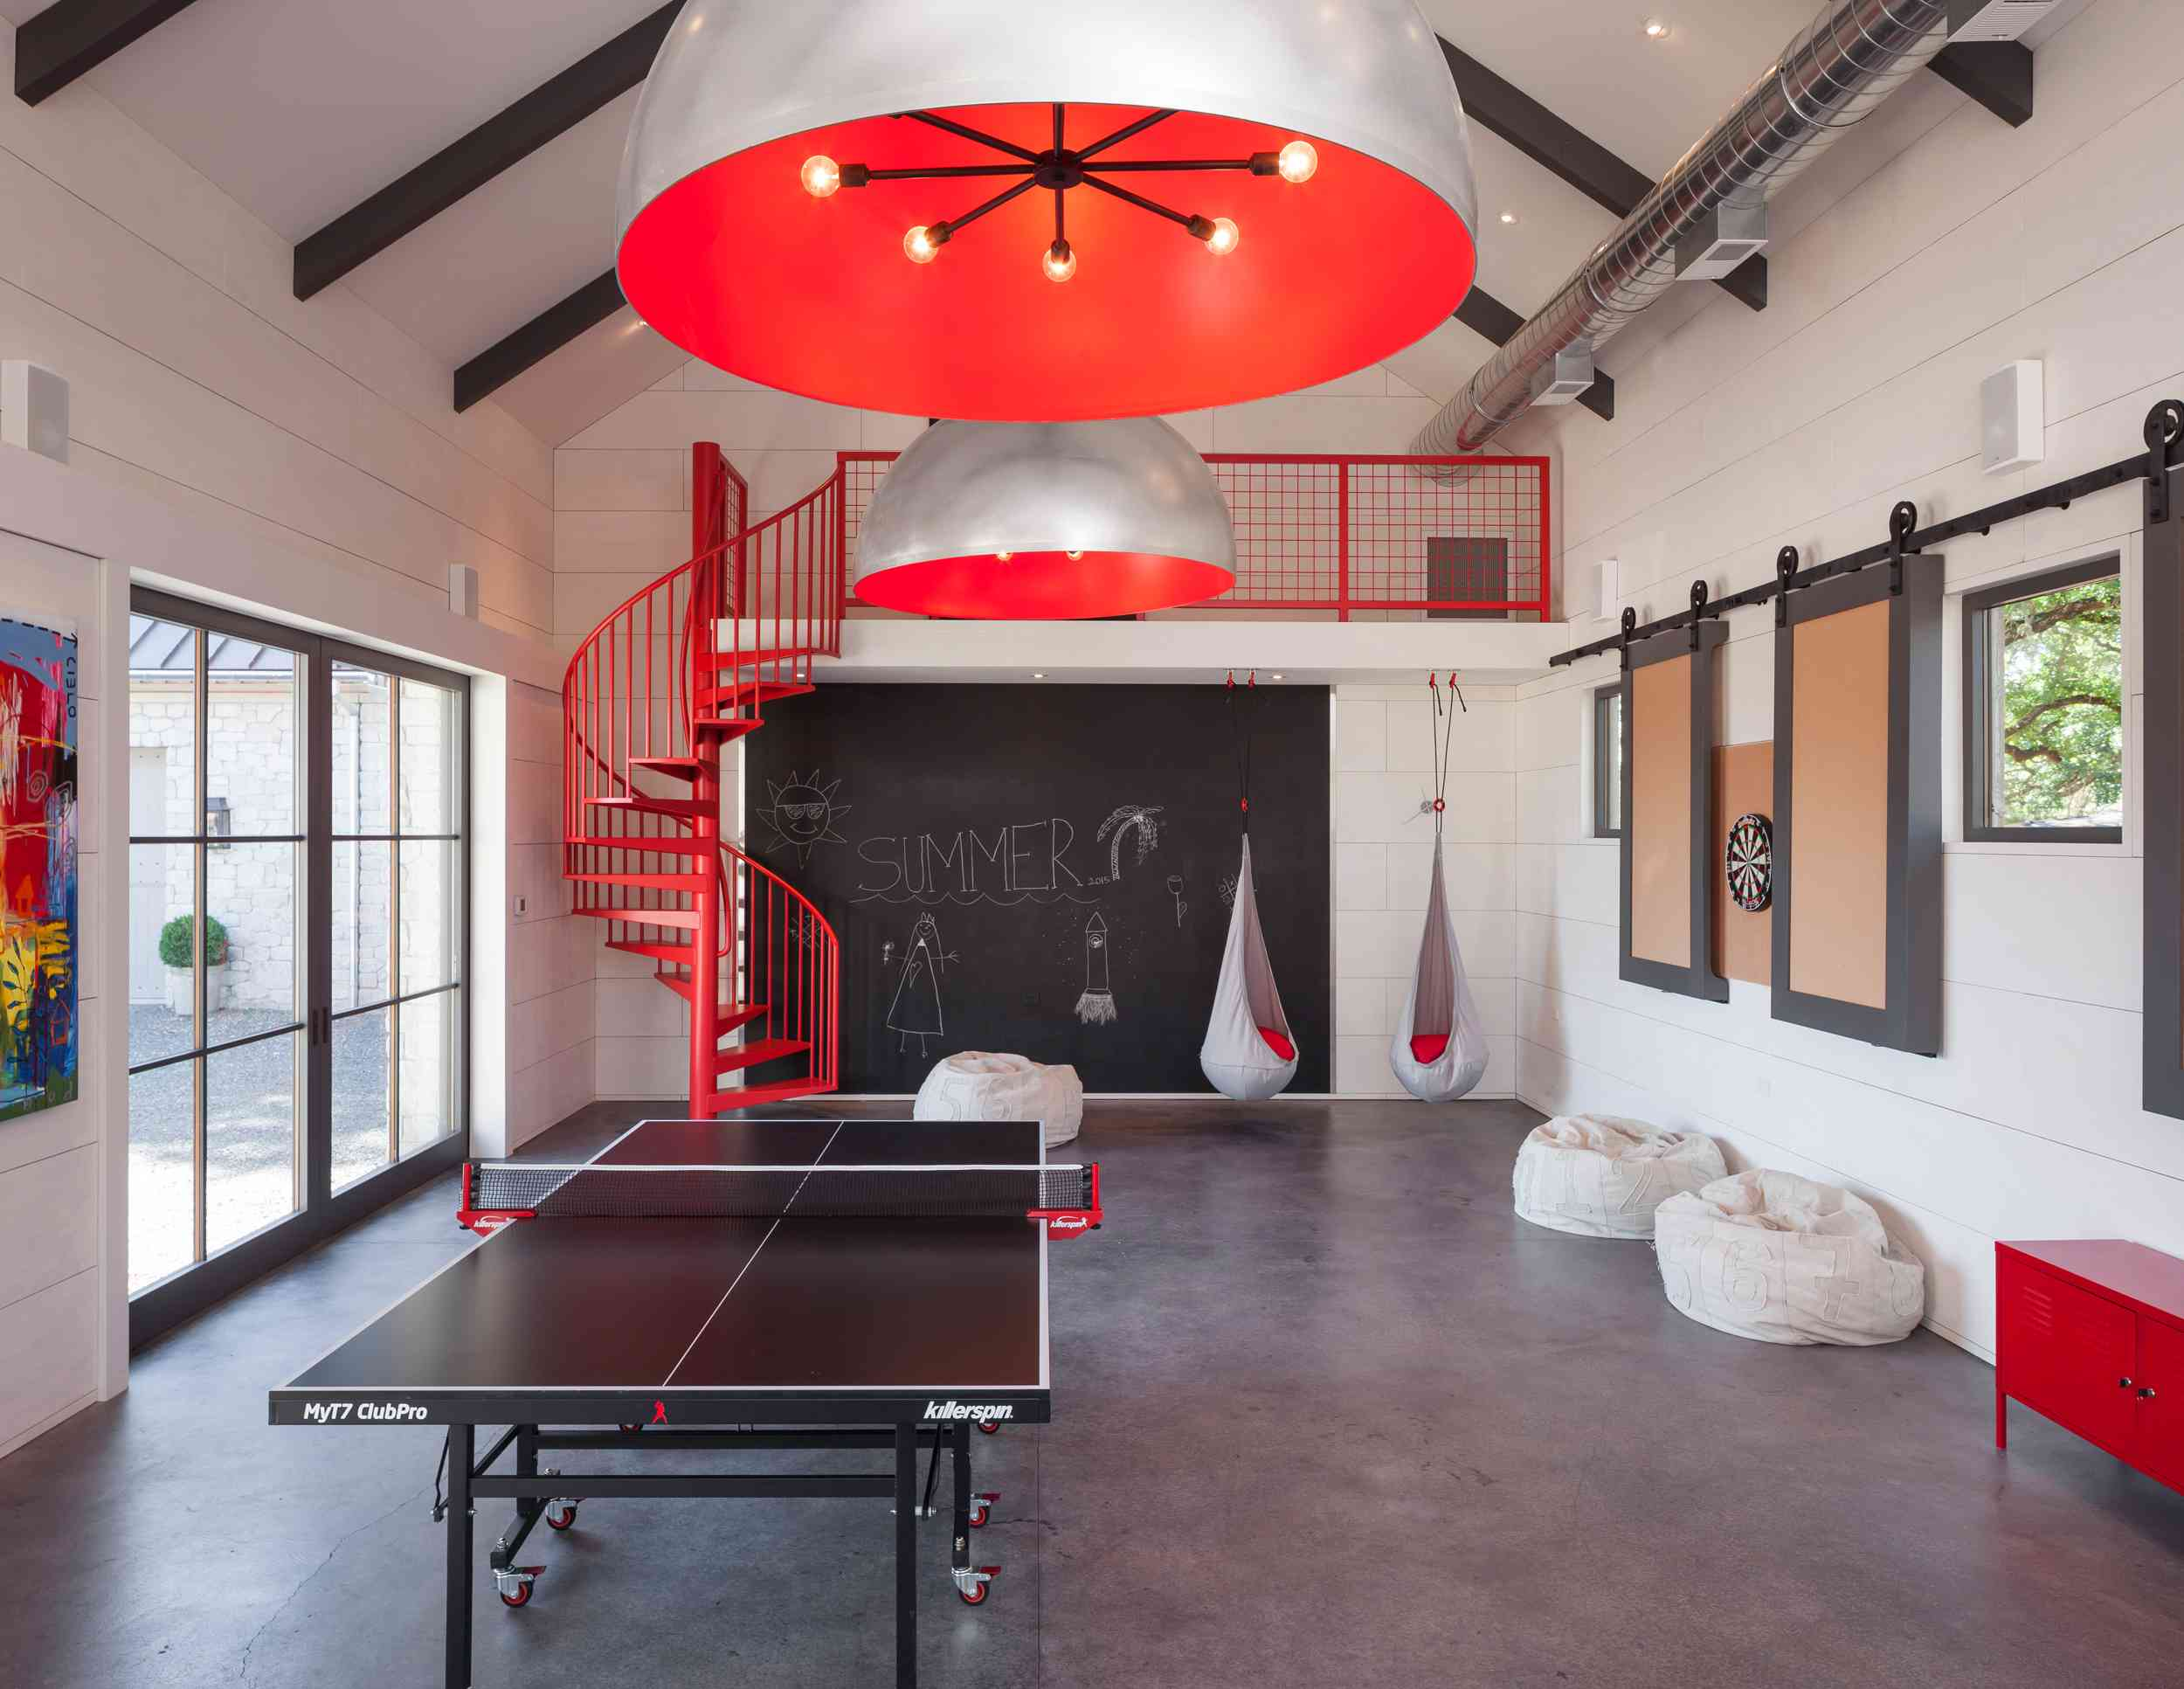 Whether you hope to have one child or six, there's no right or wrong answer when it comes to size. 11 Stylish Game Rooms That Encourage At-Home Fun